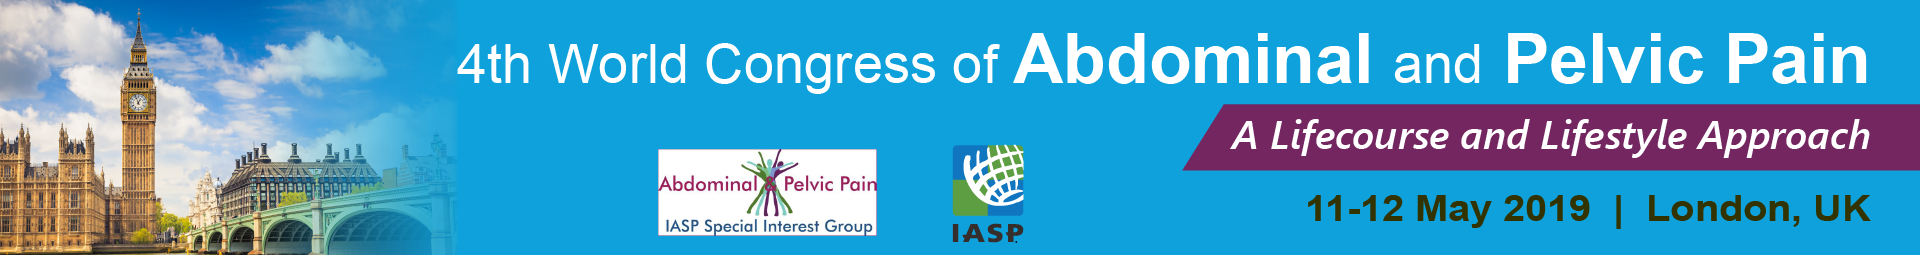 4th World Congress on Abdominal and Pelvic Pain Event Banner